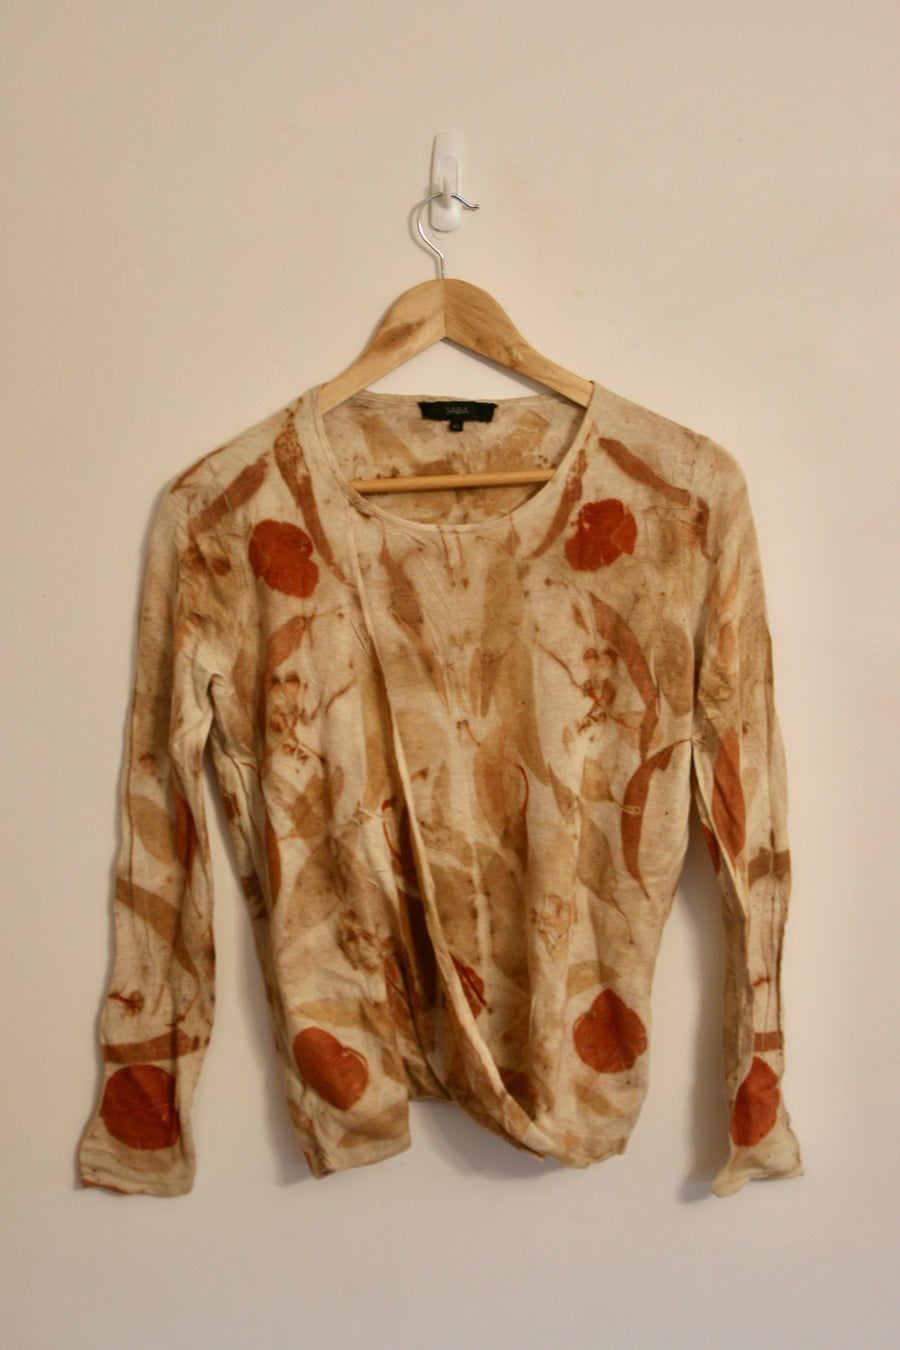 Image of Eco-Dyed Twist Top - Size S-M